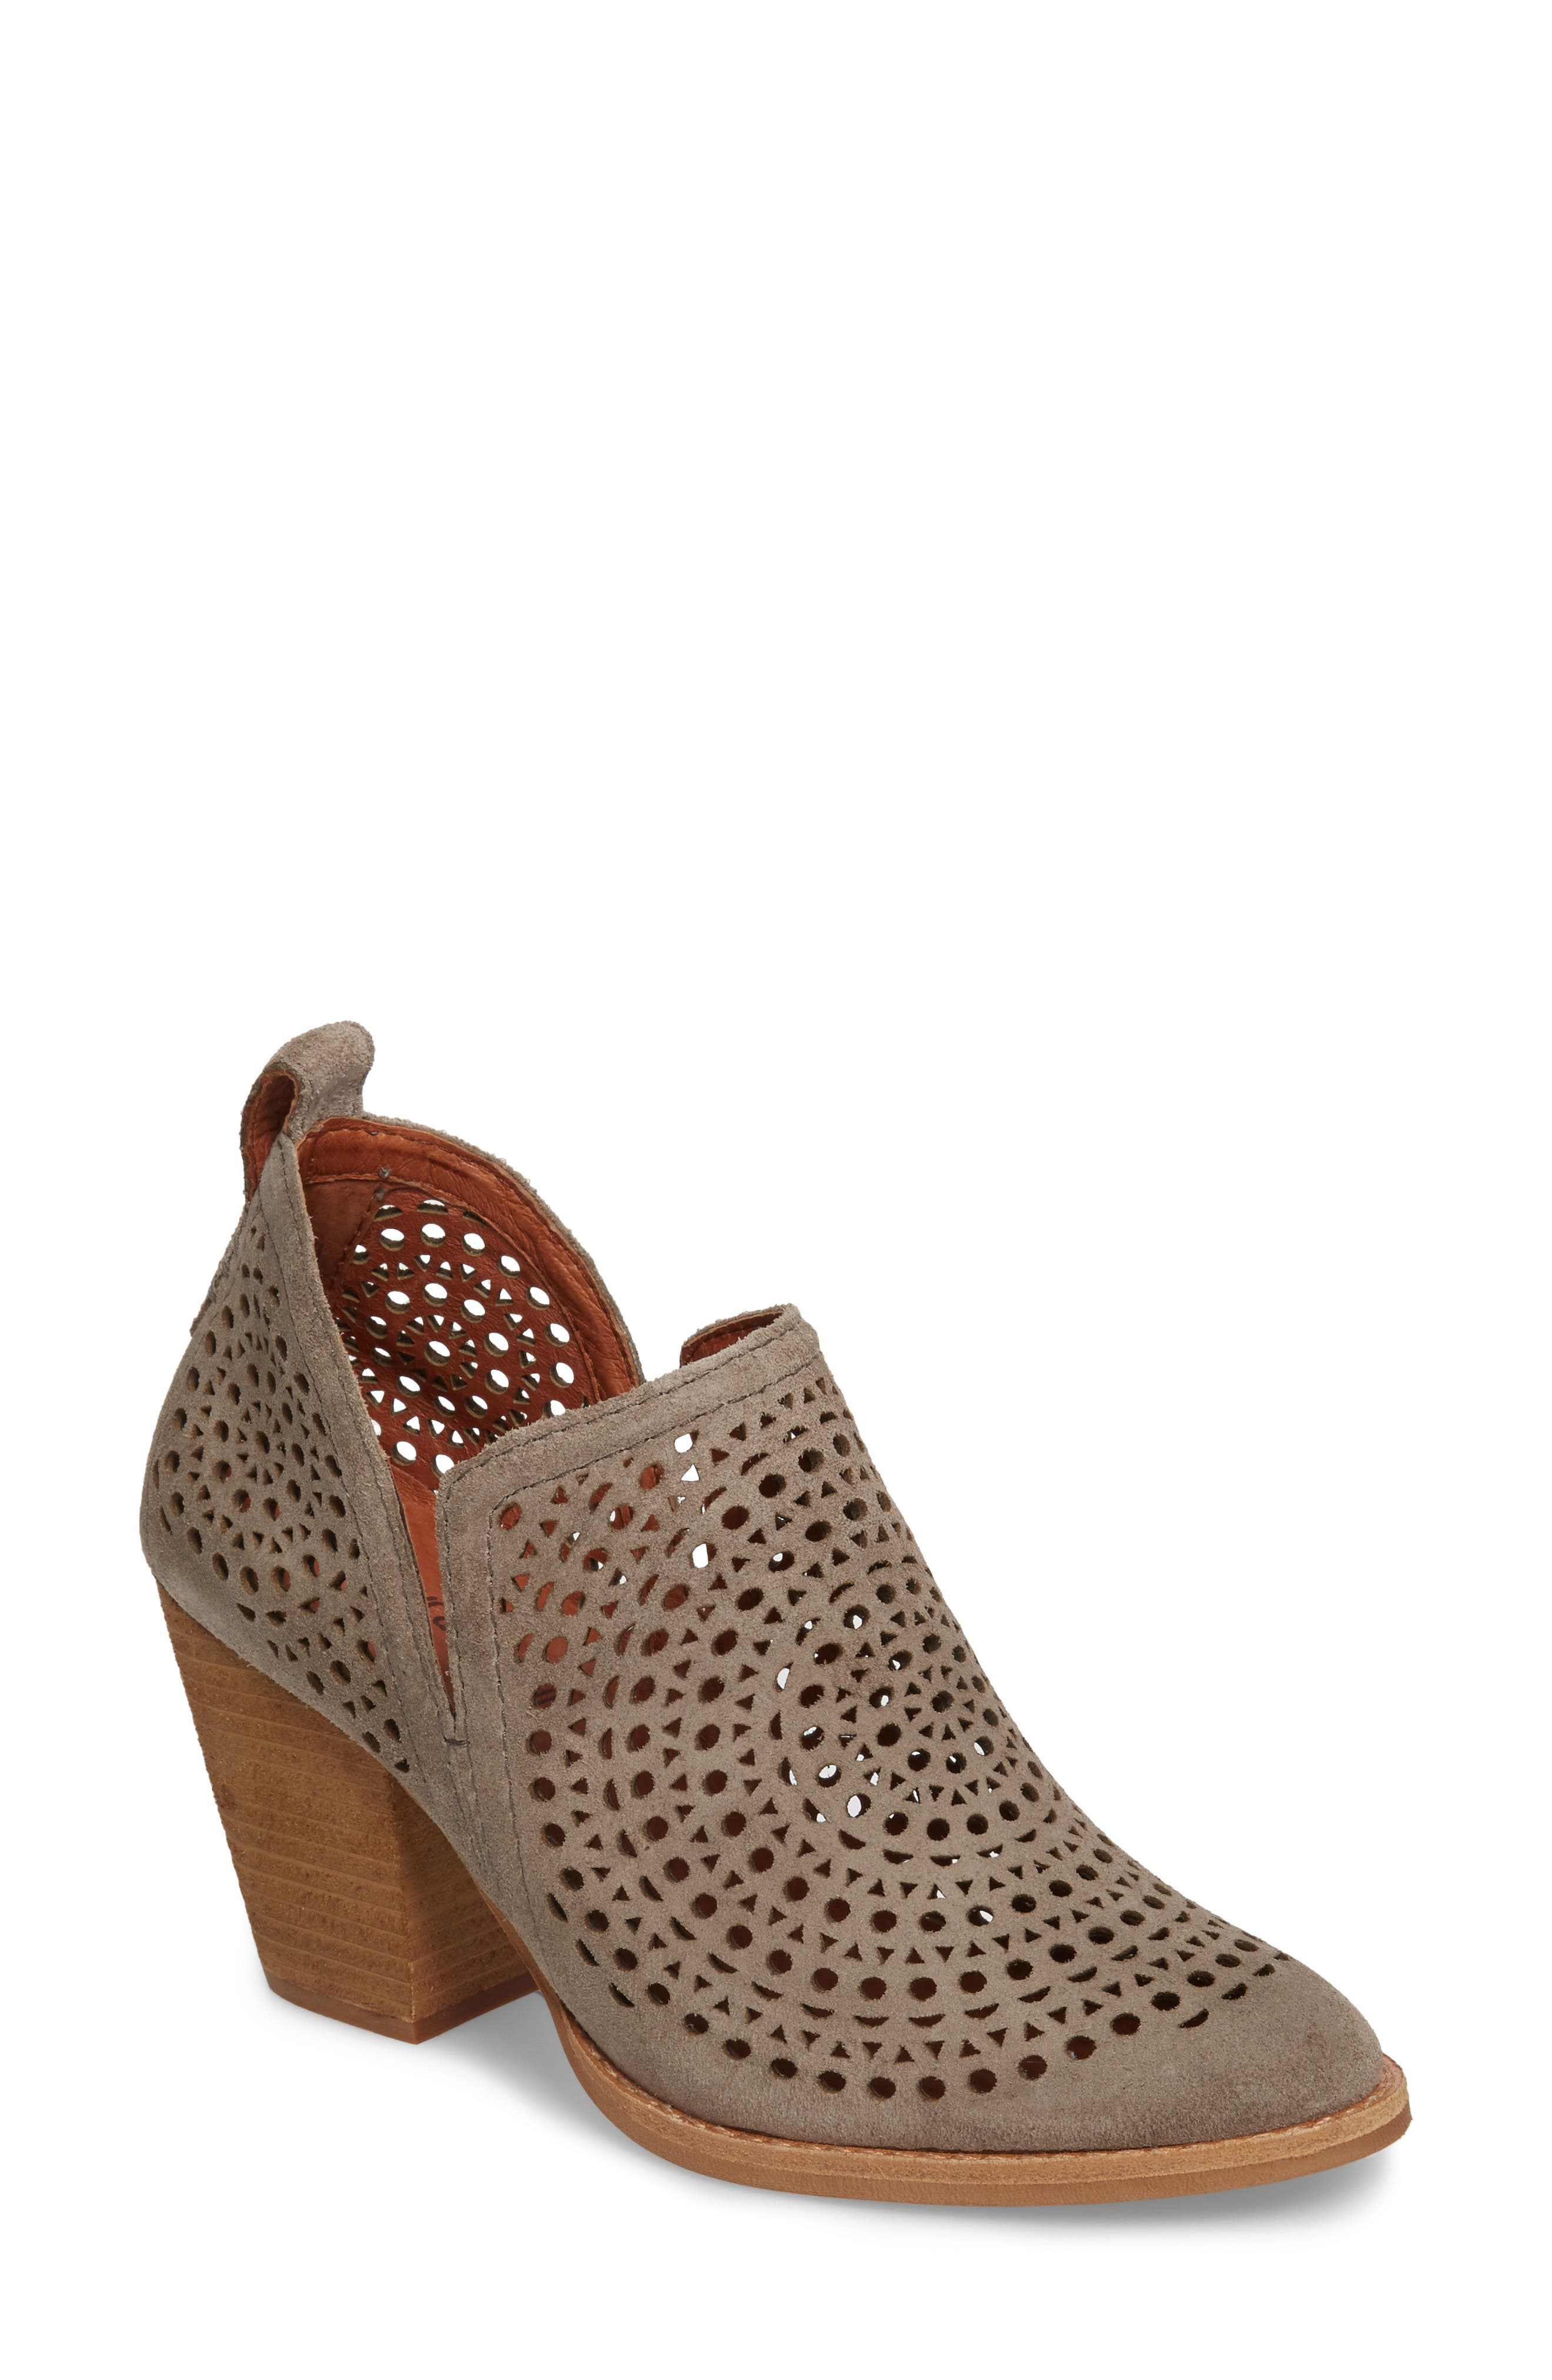 Rosalee Bootie,                             Main thumbnail 1, color,                             TAUPE SUEDE